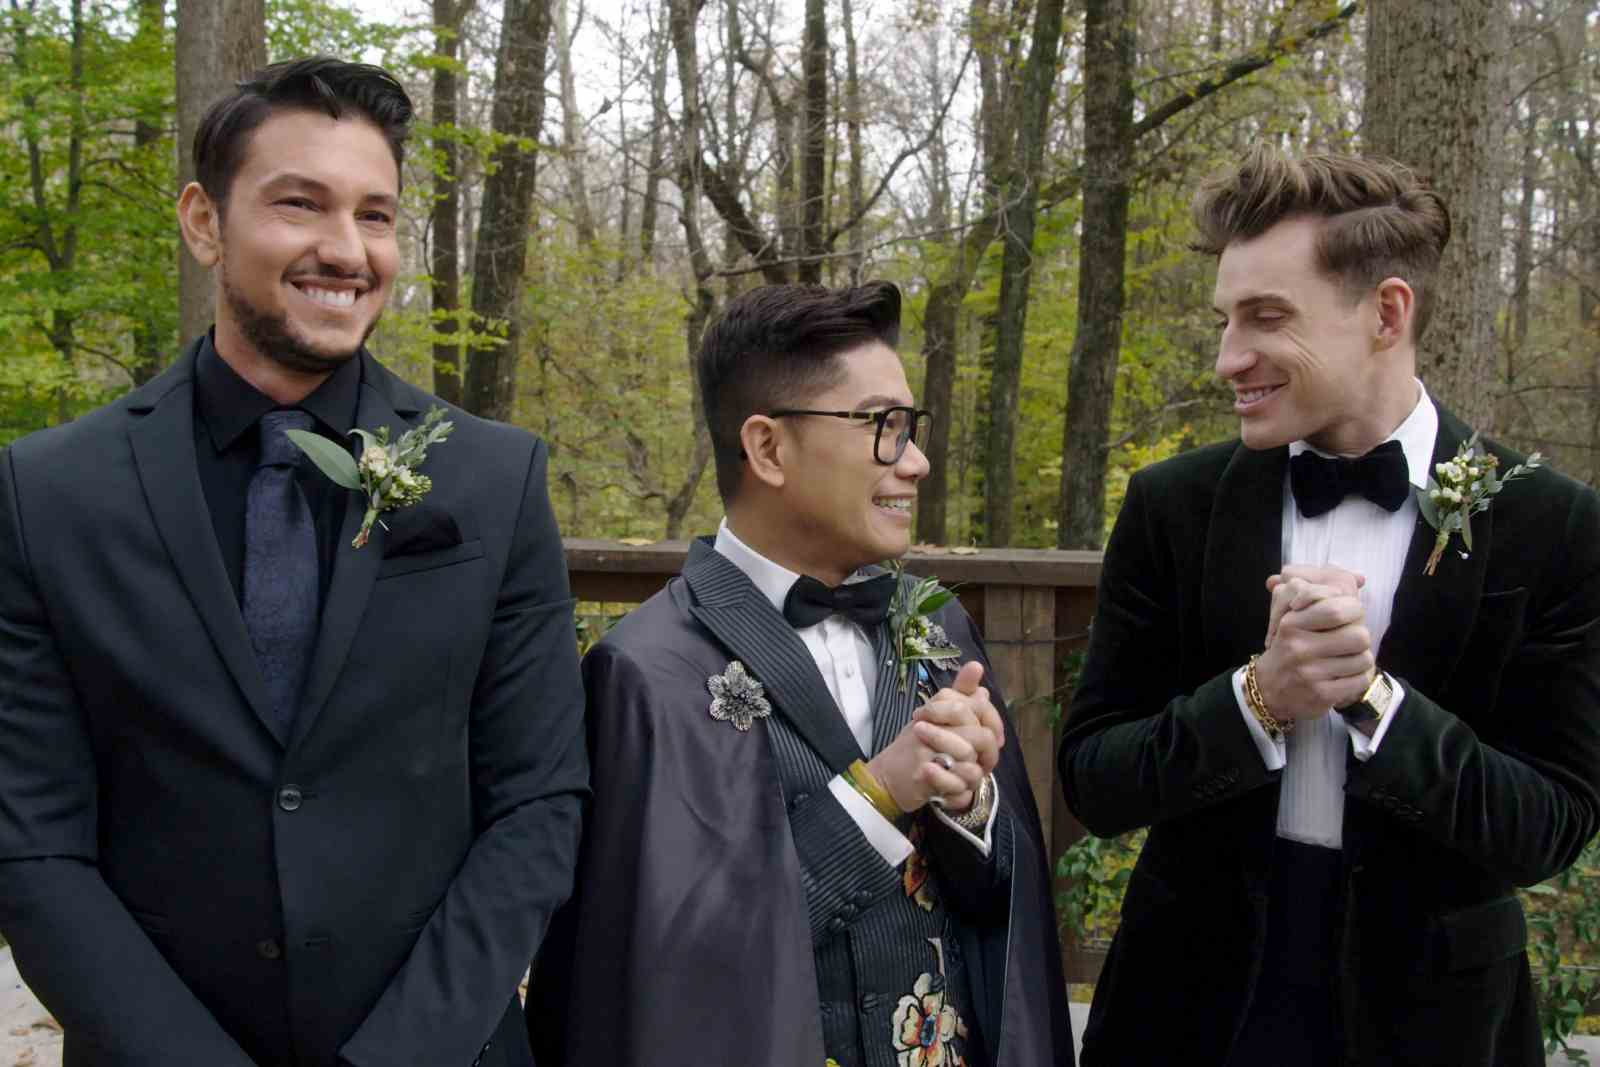 Chef Gabriele Bertaccini, fashion designer Thai Nguyen and interior designer Jeremiah Brent